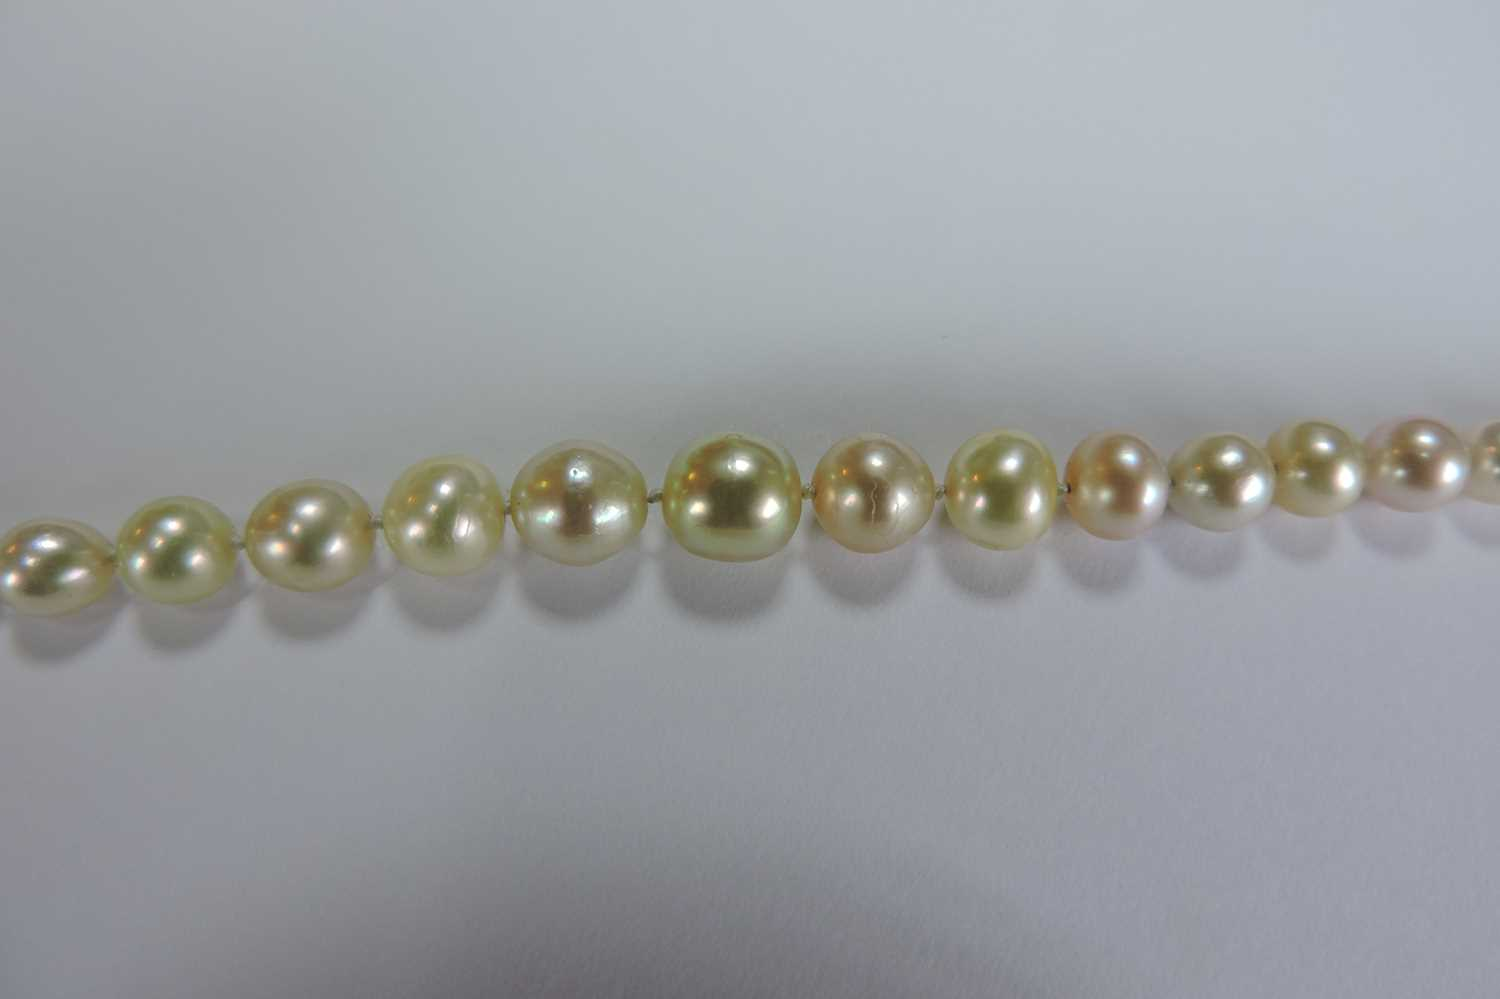 A single row graduated natural saltwater pearl necklace, - Image 6 of 12